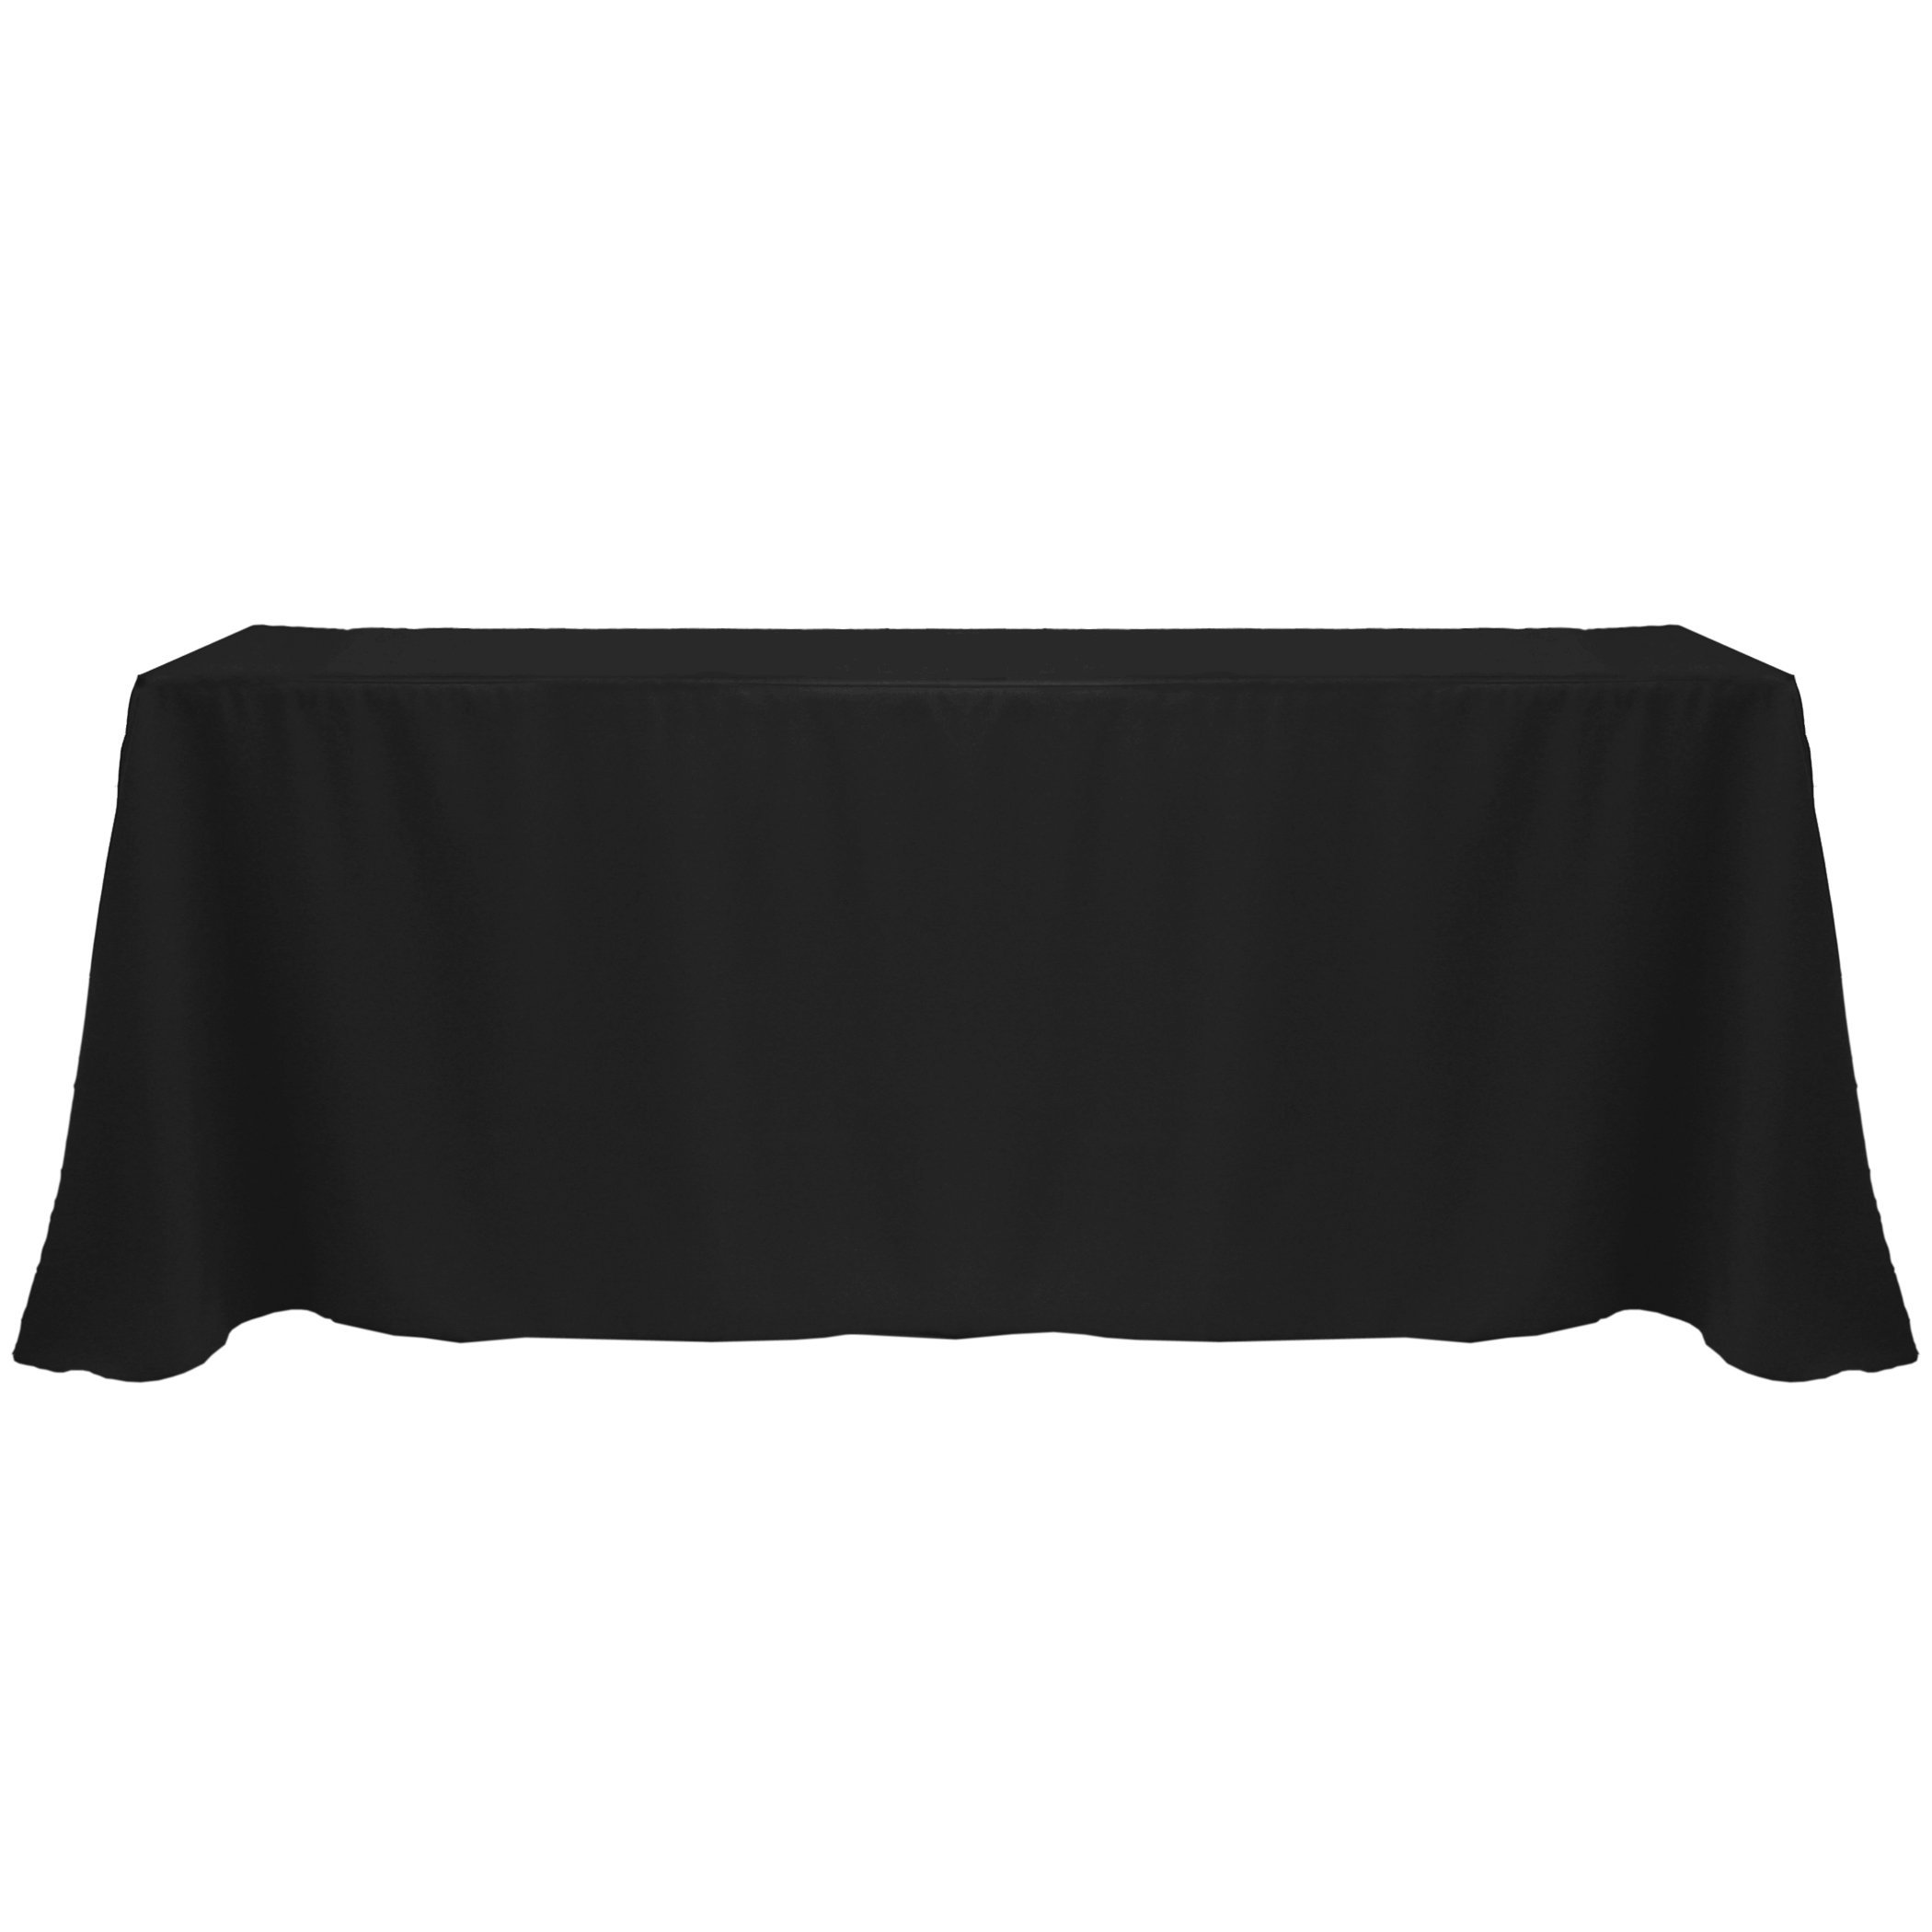 Ultimate Textile (10 Pack) 90 x 132-Inch Rectangular Polyester Linen Tablecloth with Rounded Corners - for Wedding, Restaurant or Banquet use, Black